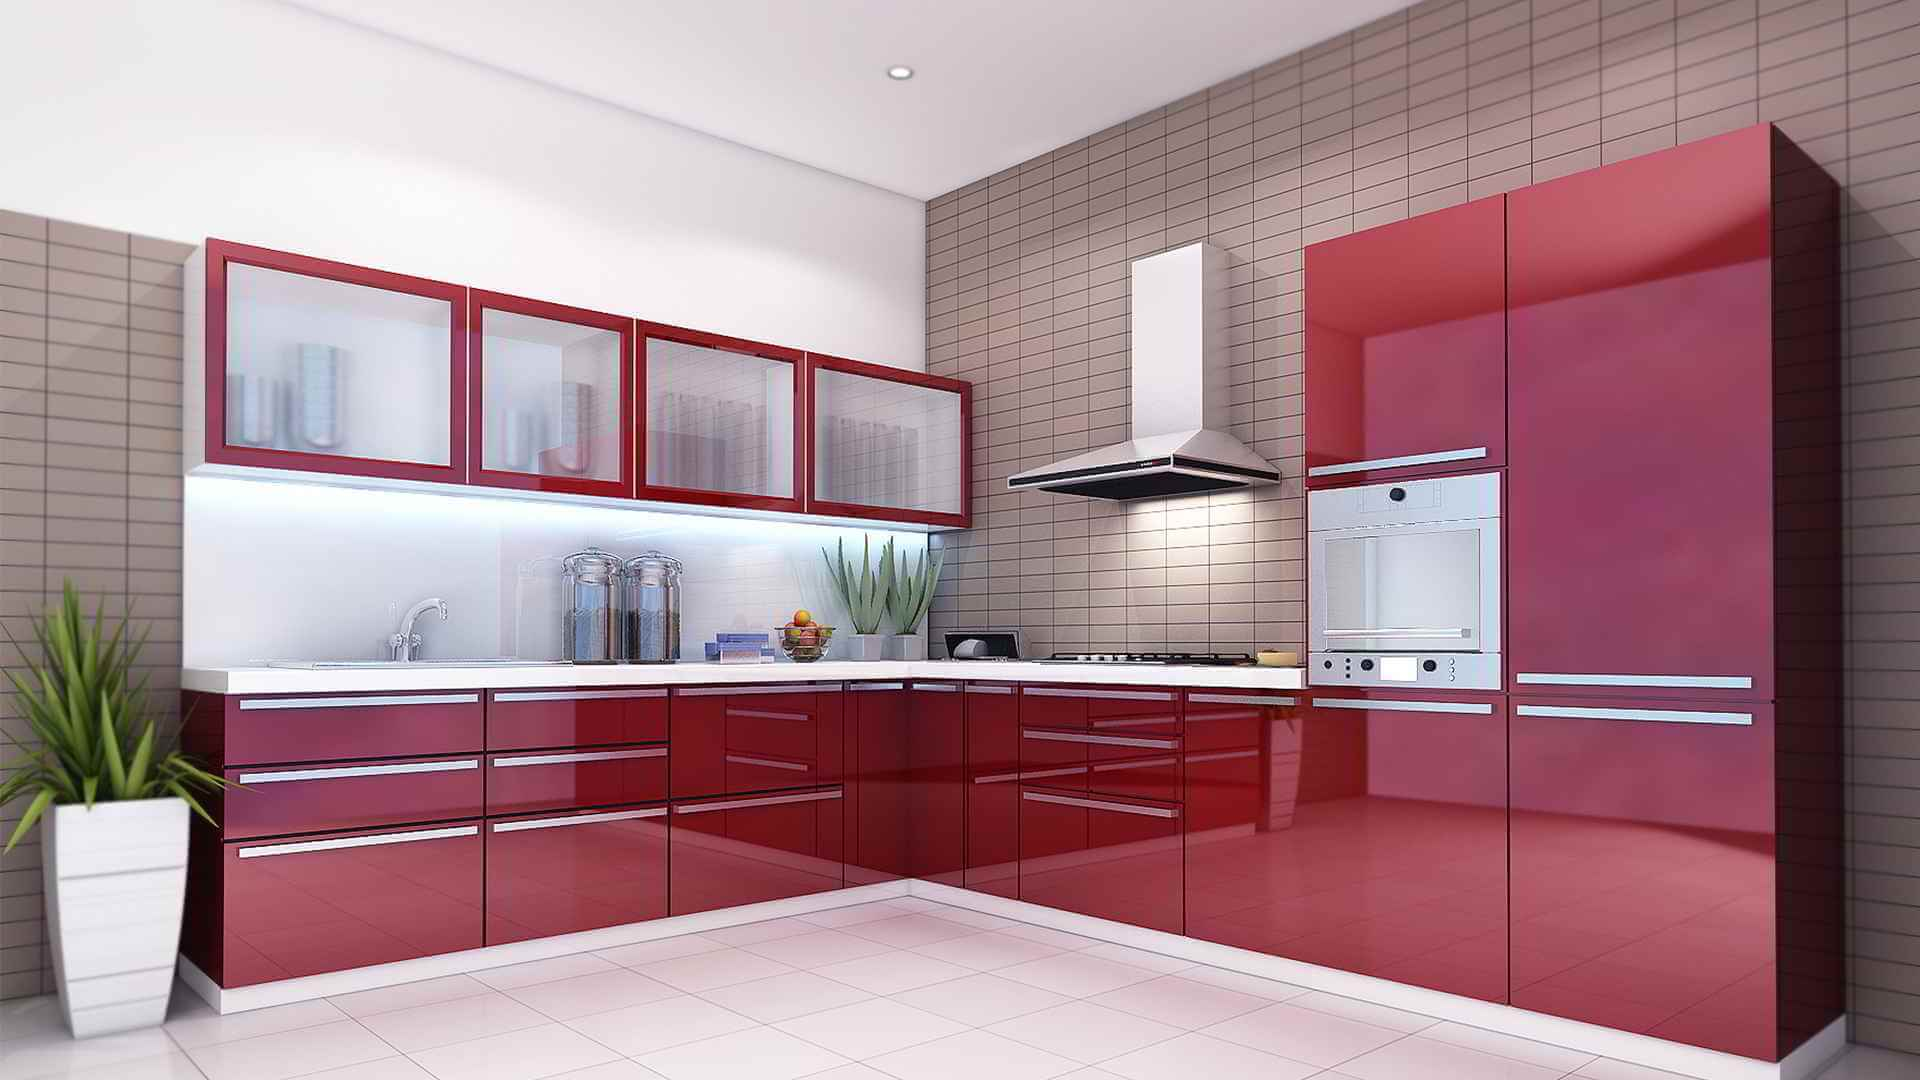 Best Places to Buy Modular Kitchen Furniture in Jaipur